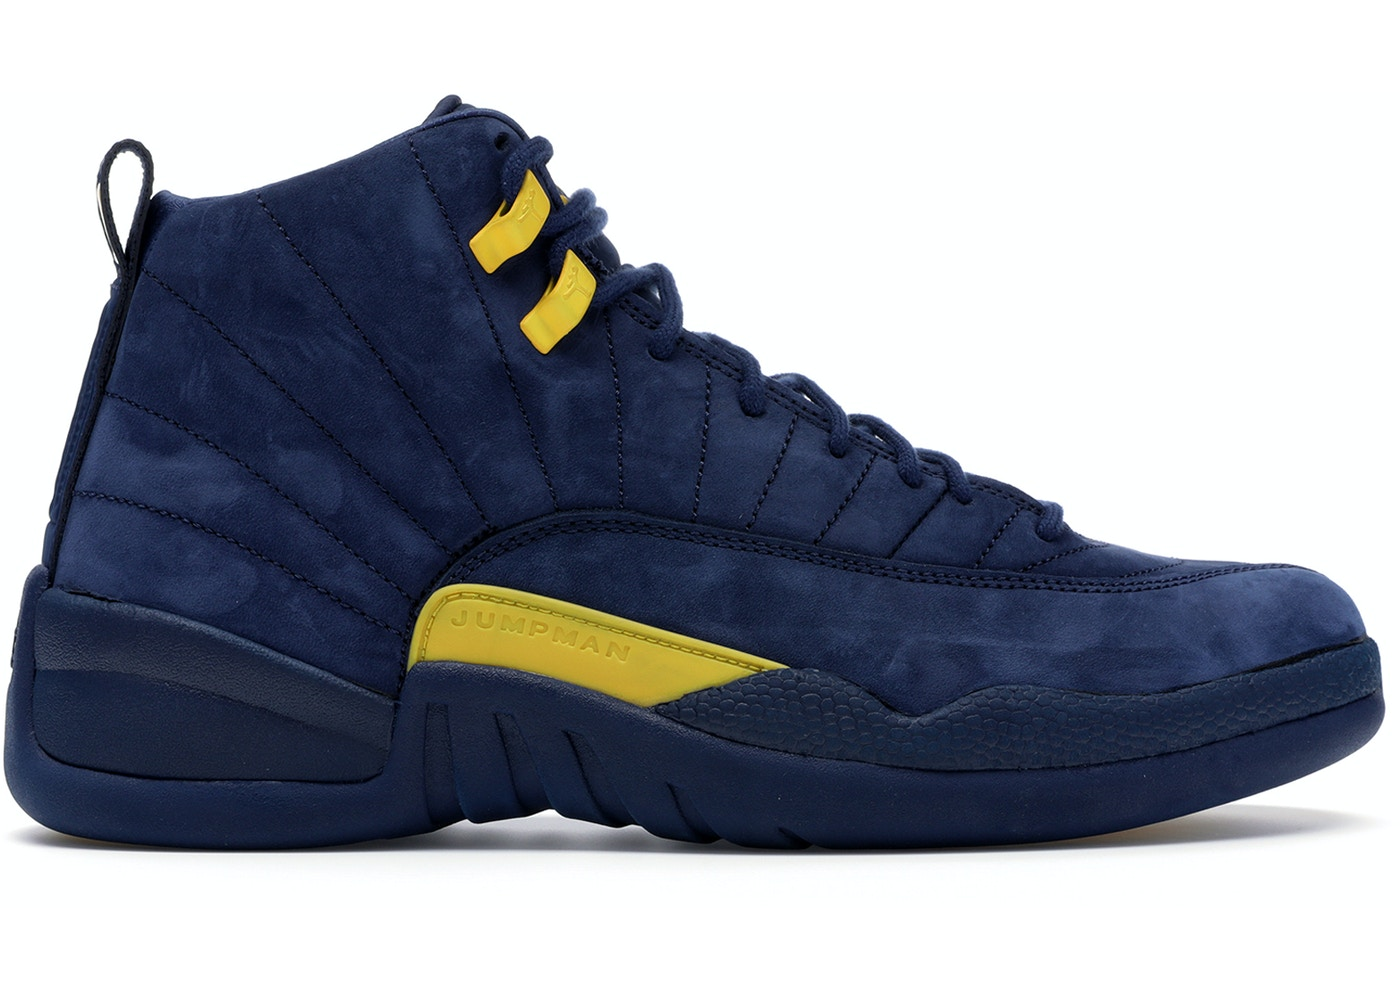 cheap for discount 2f4b8 4e463 Jordan 12 Retro Michigan